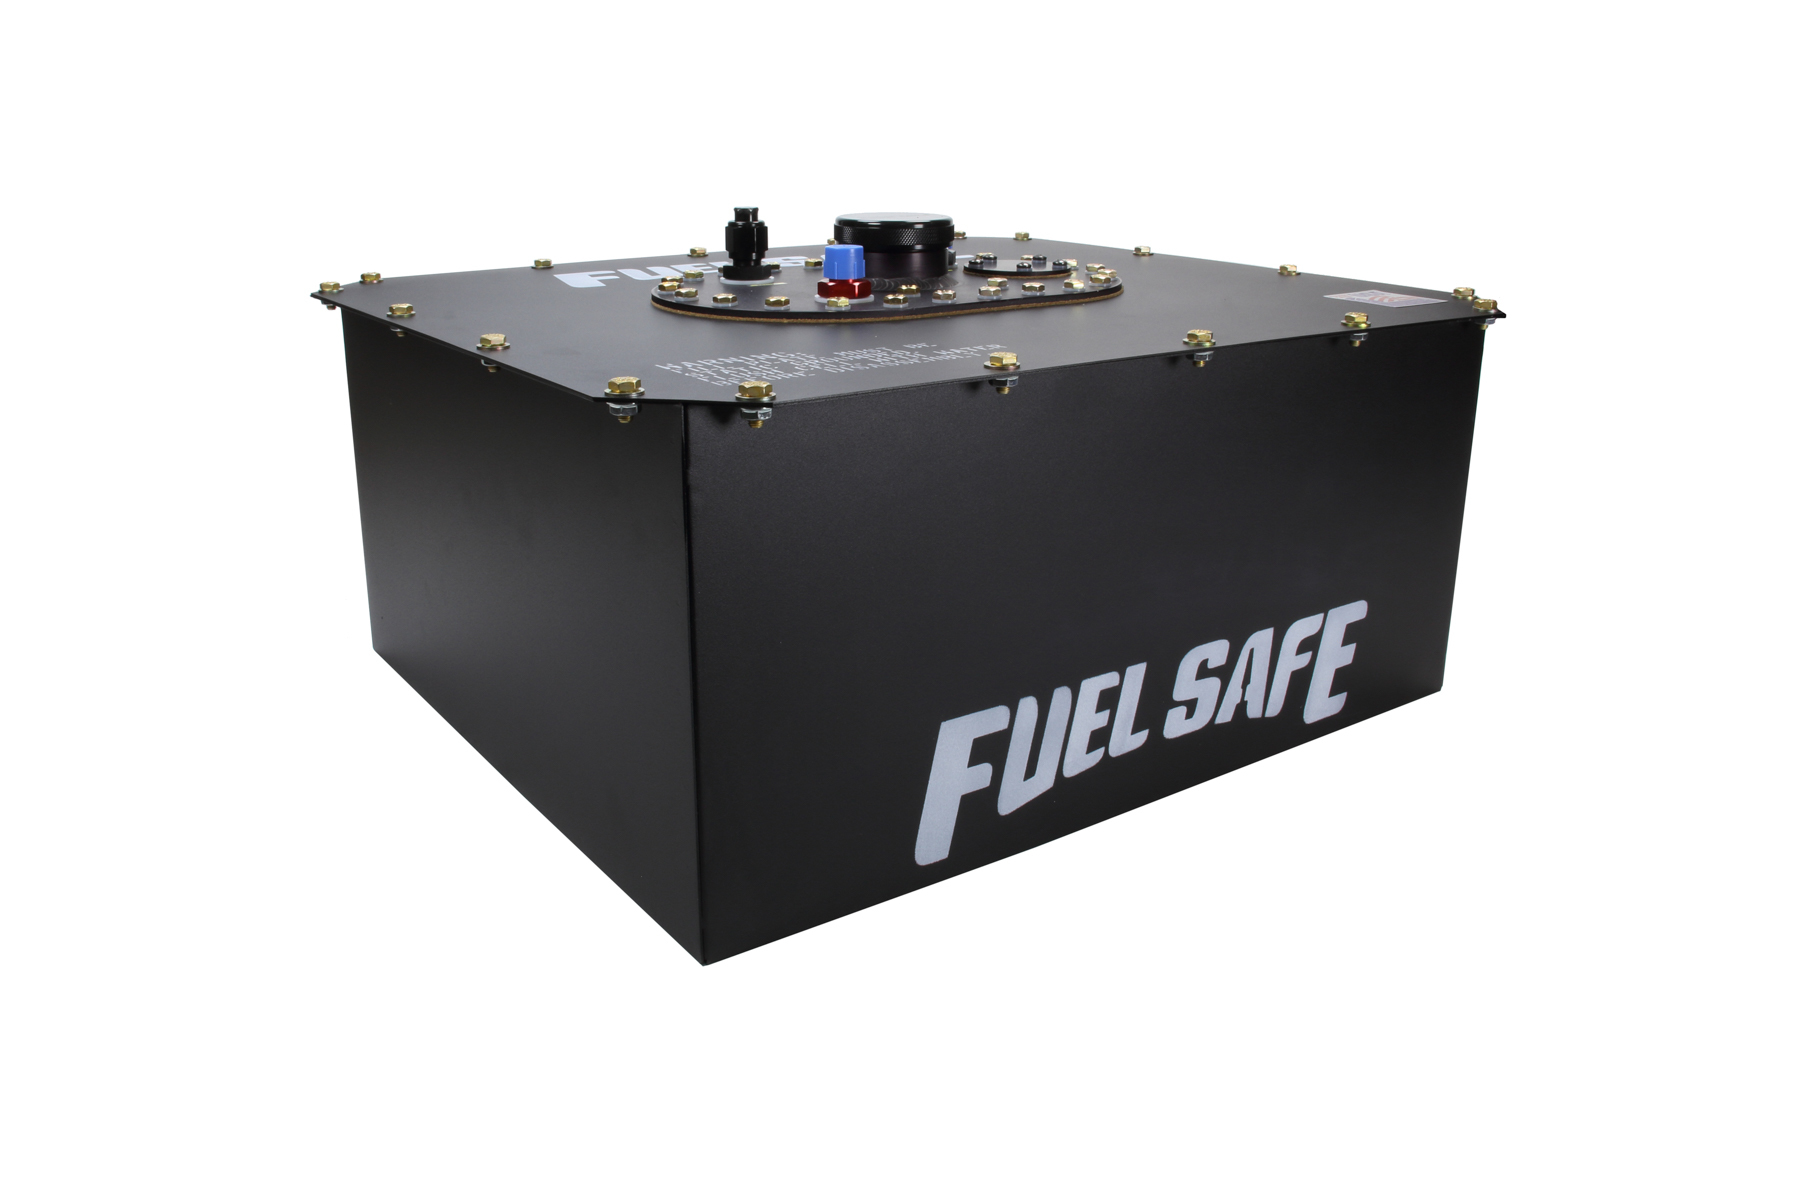 Fuel Safe ED112 Fuel Cell and Can, Enduro Cell, 12 gal, 20-3/4 x 17-7/8 x 9-1/2 in Tall, 8 AN Male Outlet / Vent, Steel / Plastic, Black, Each